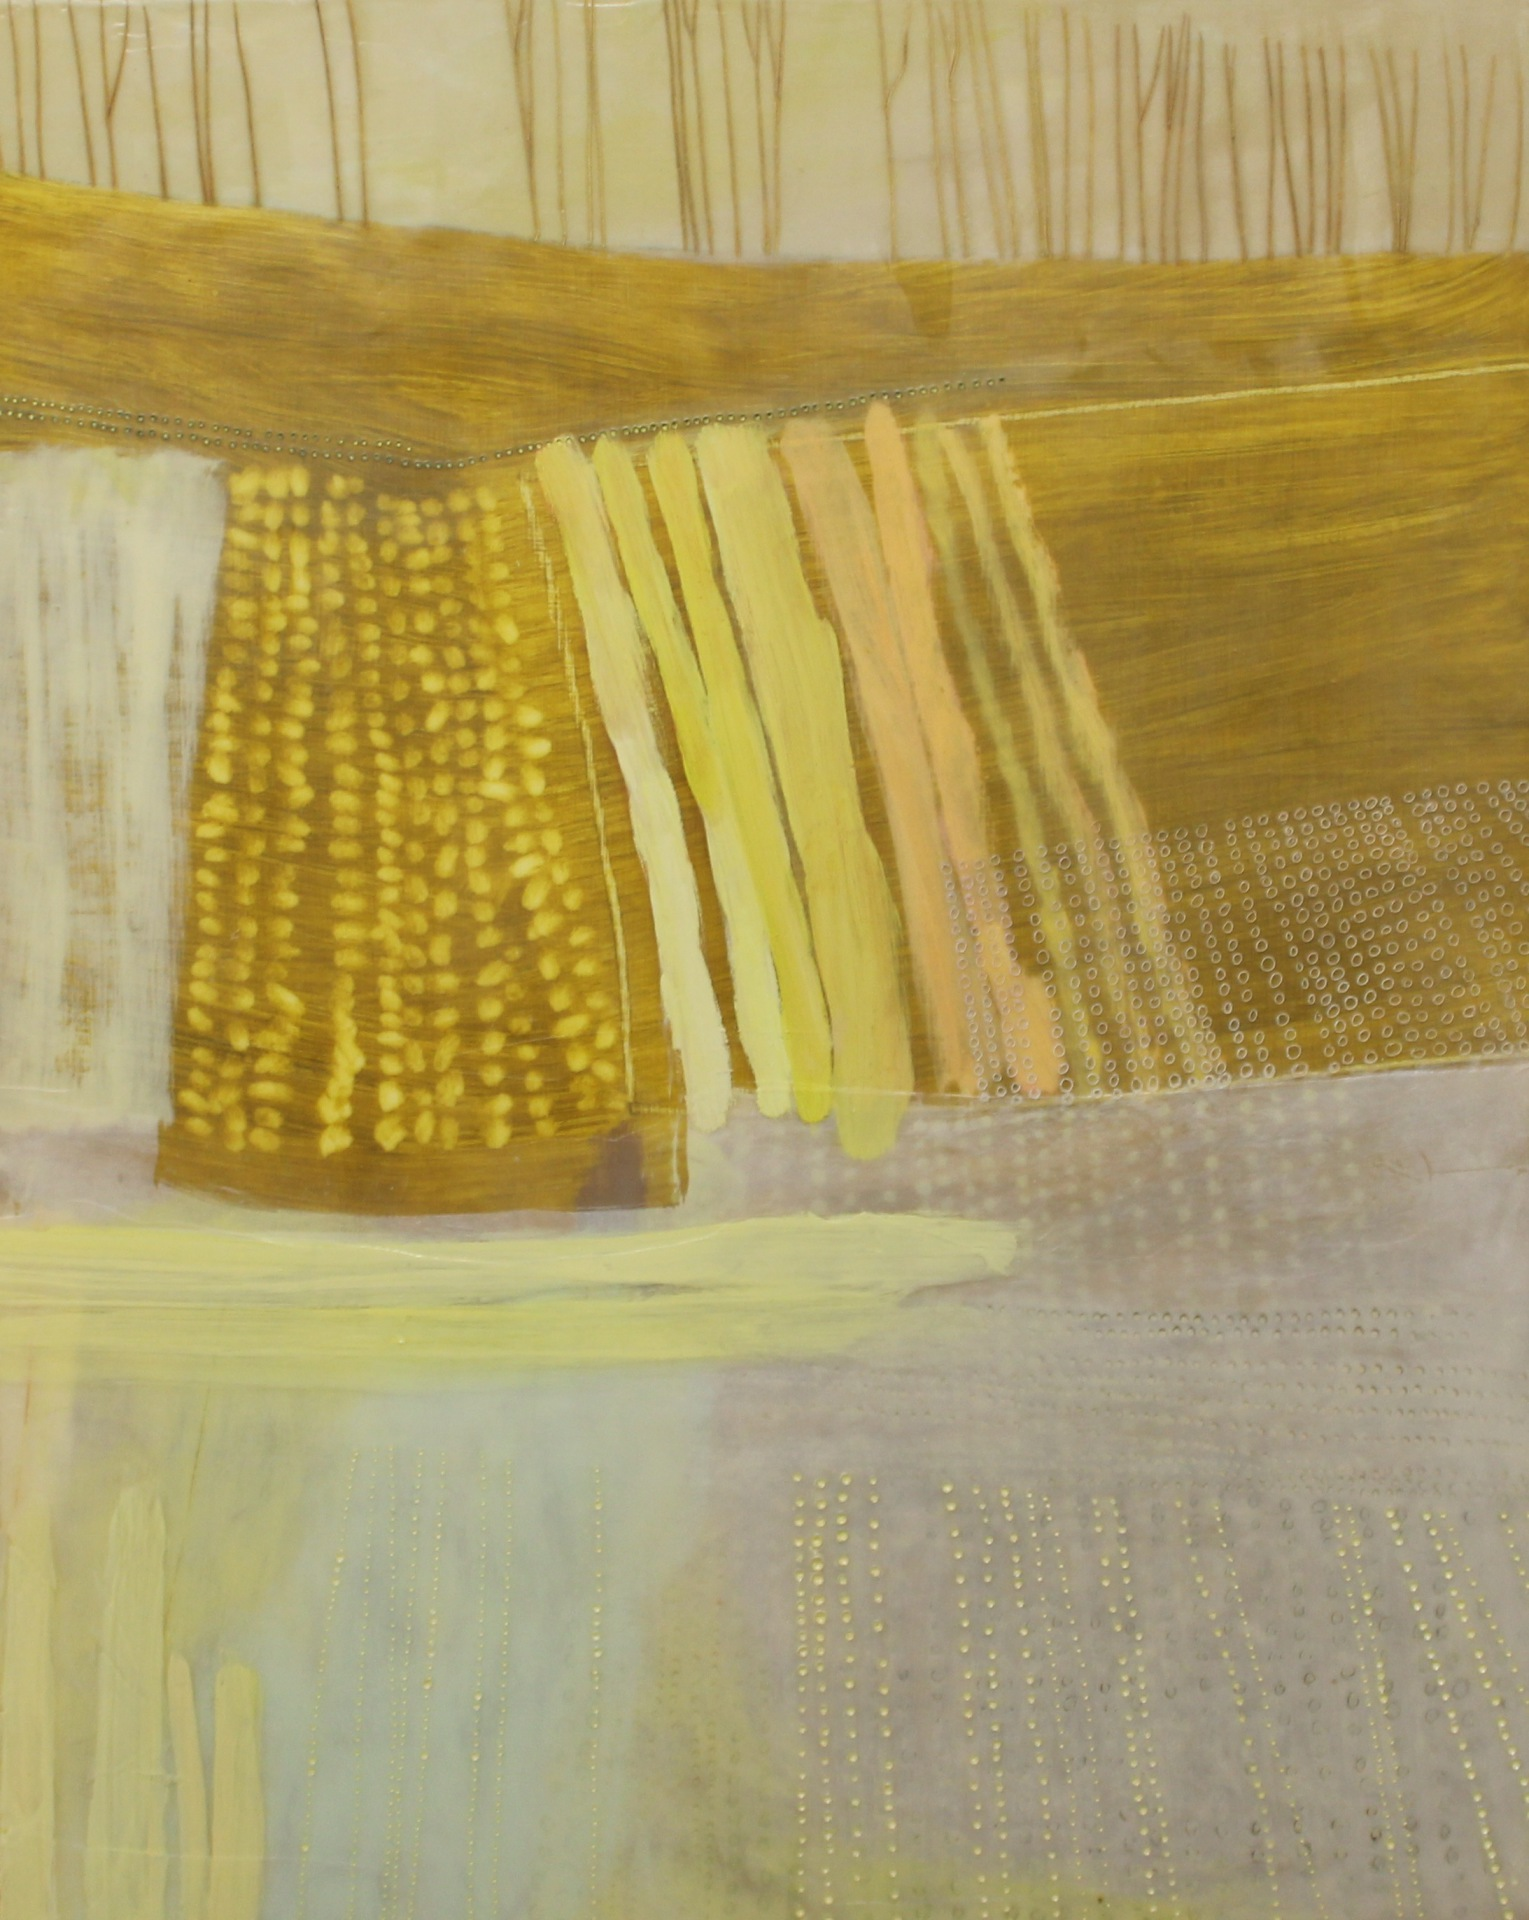 OUR FARM, SPRING 2014 - 20X16 - ENCAUSTIC/PANEL - 2014